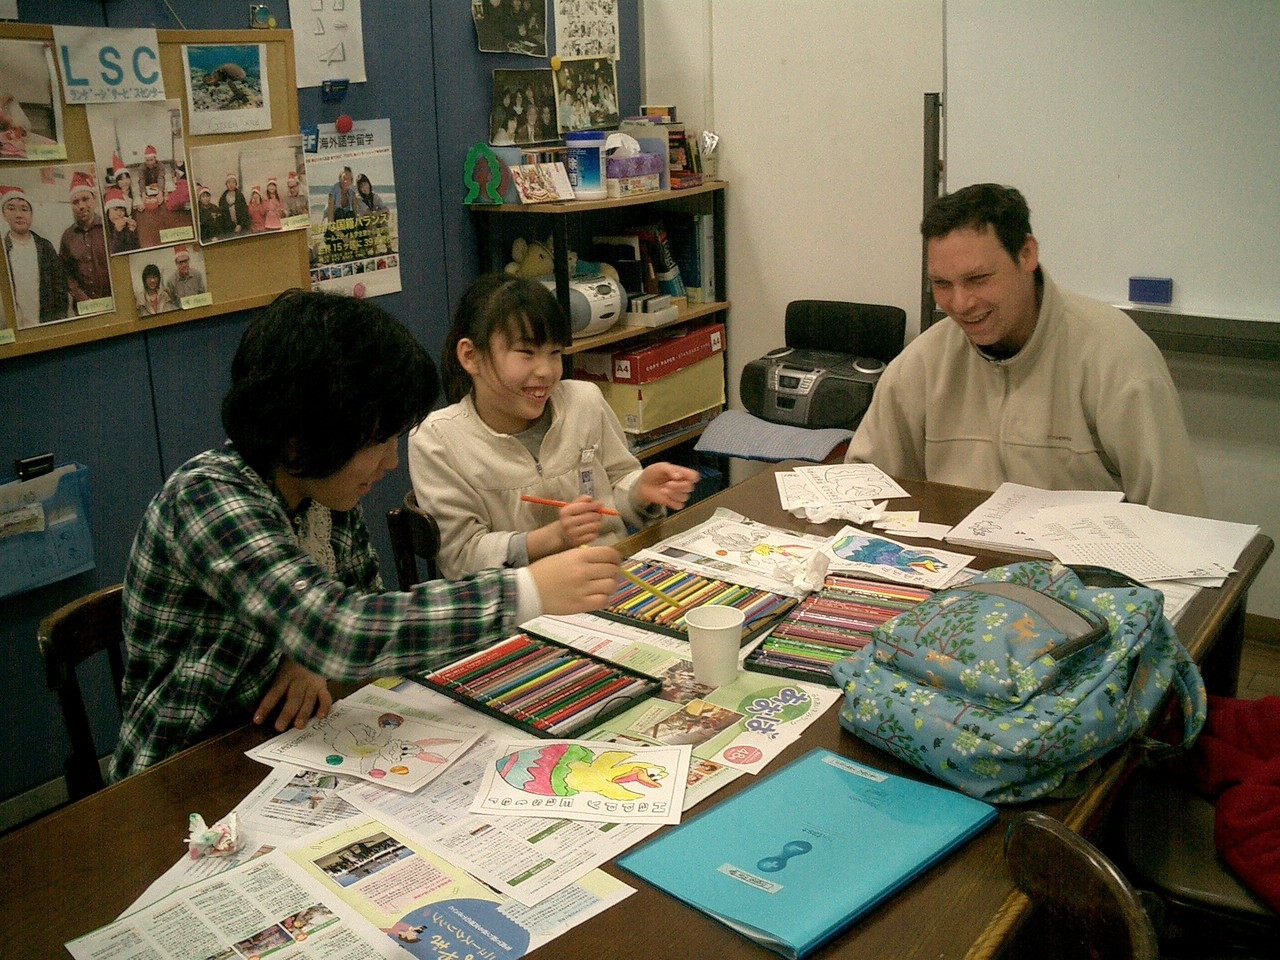 Have fun! Let's enjoy English lesson together.